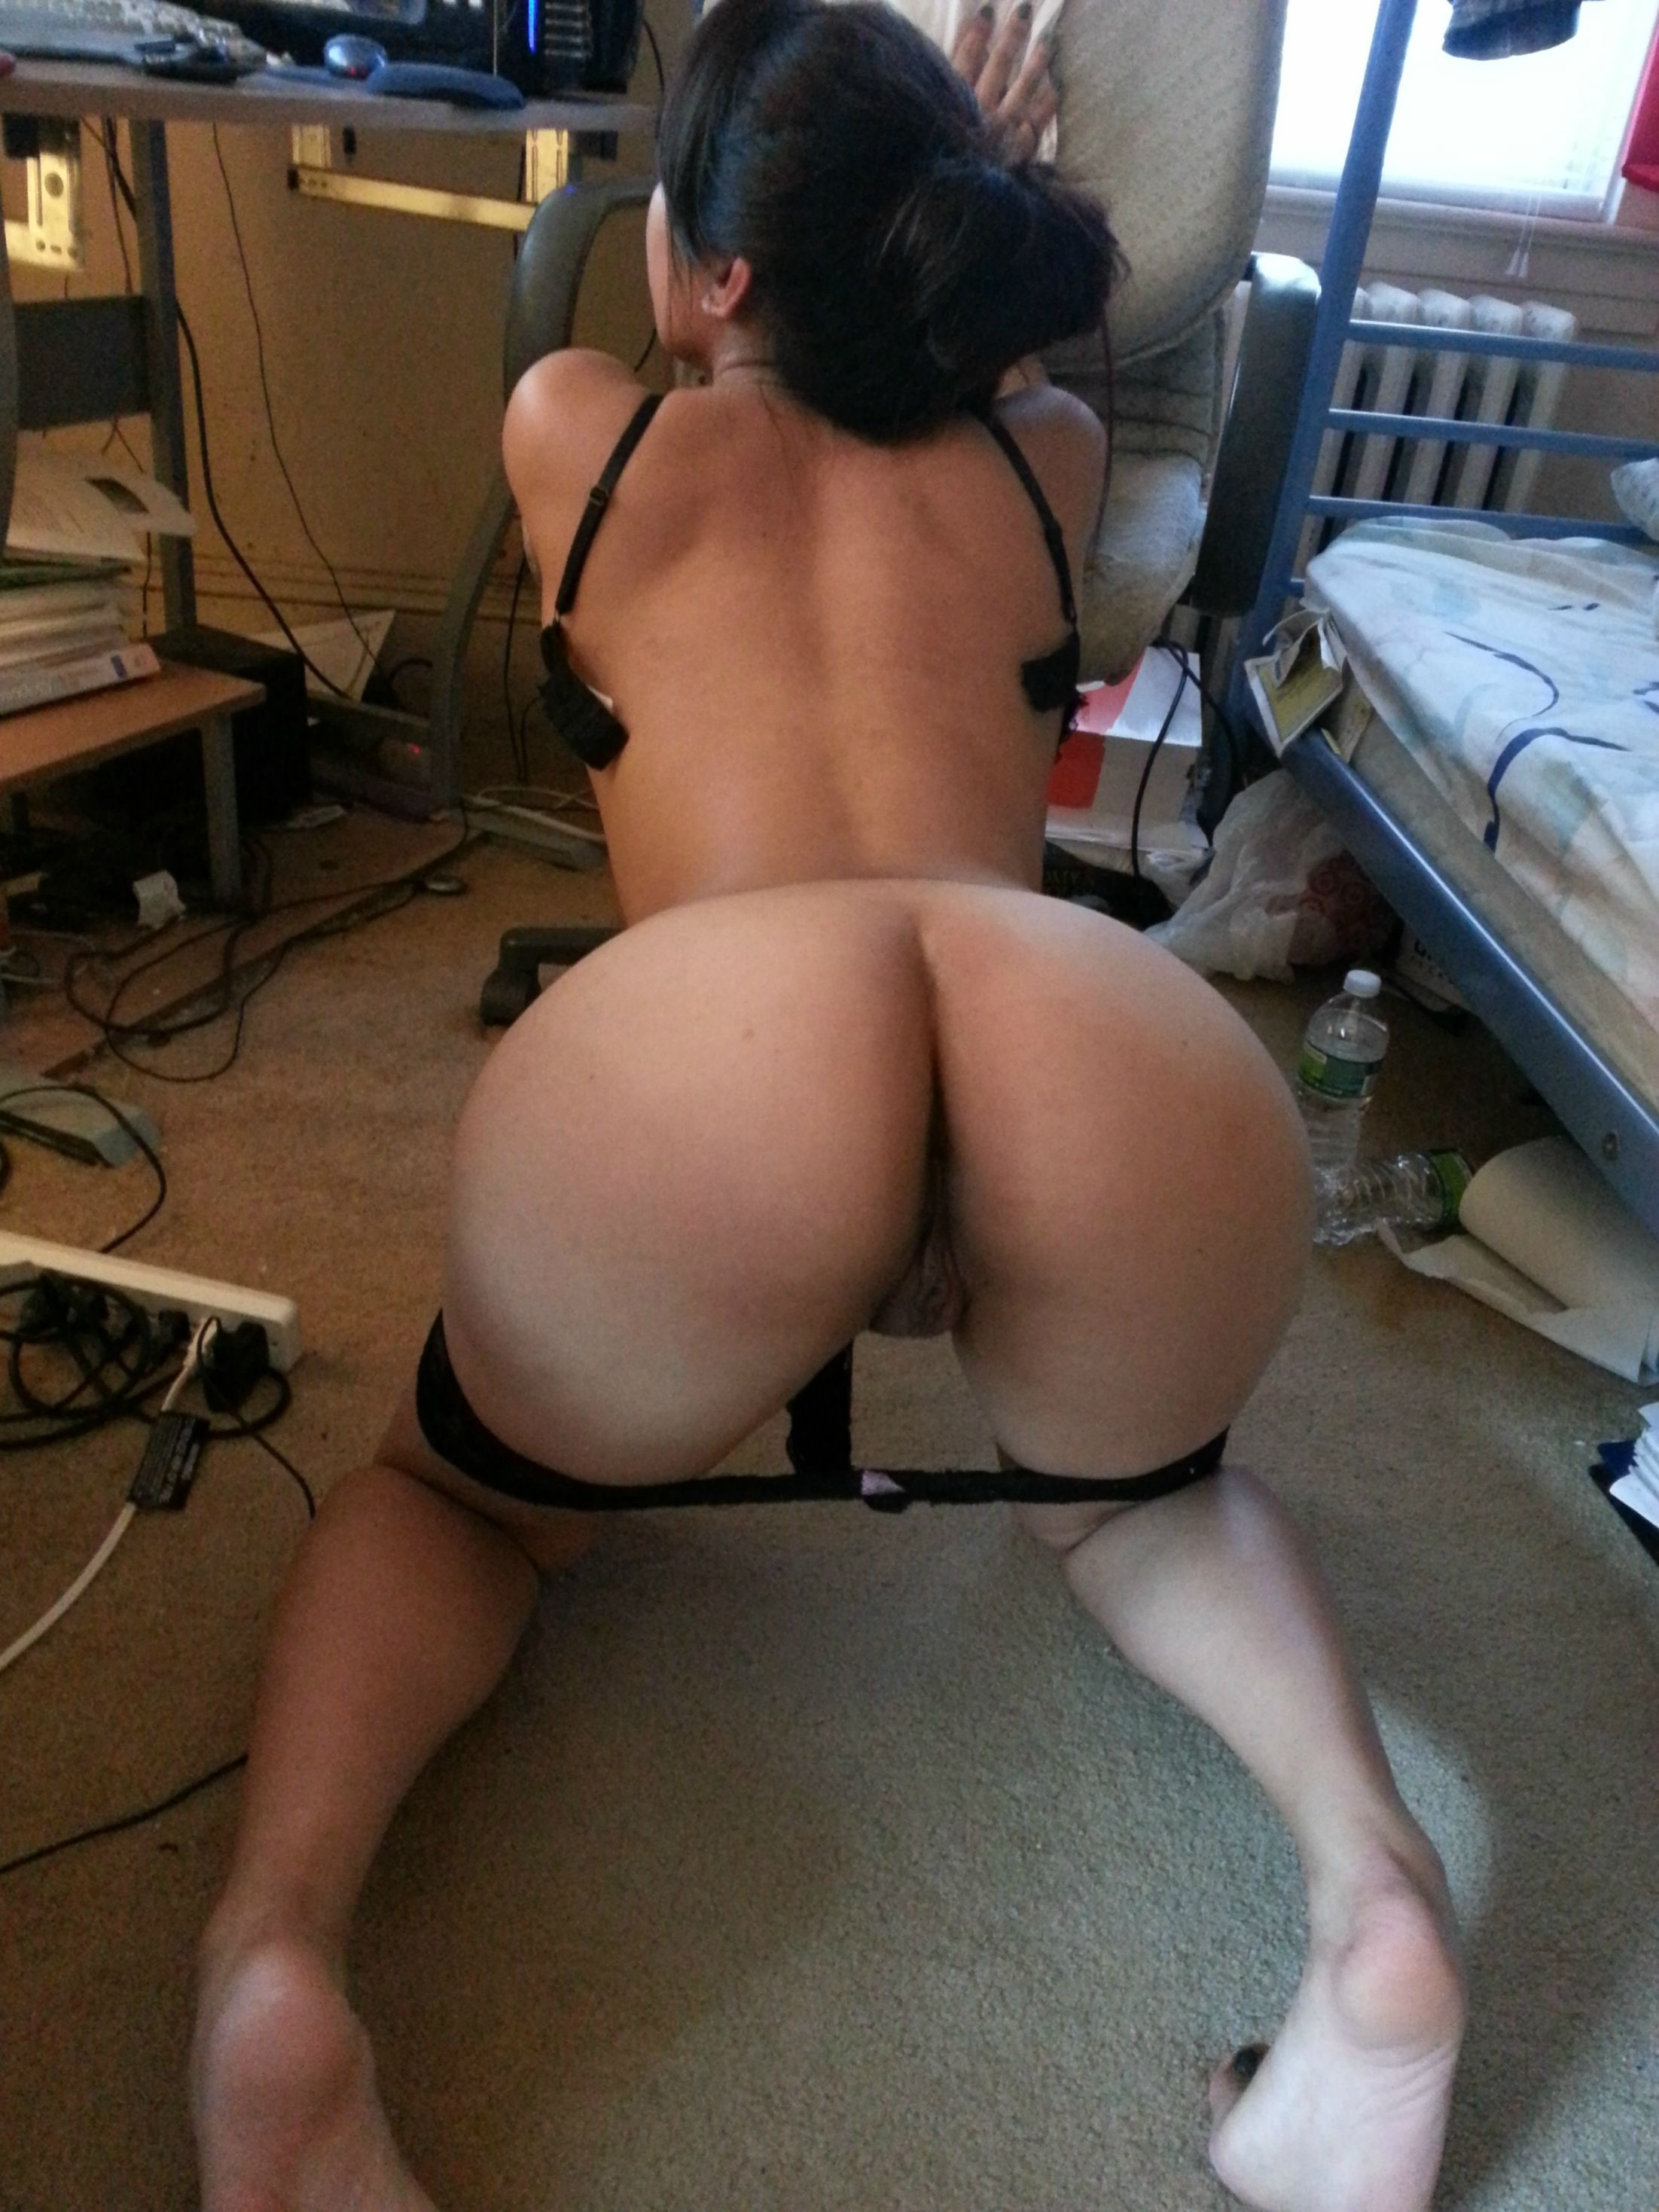 Exgirlfriend best ass nude 2